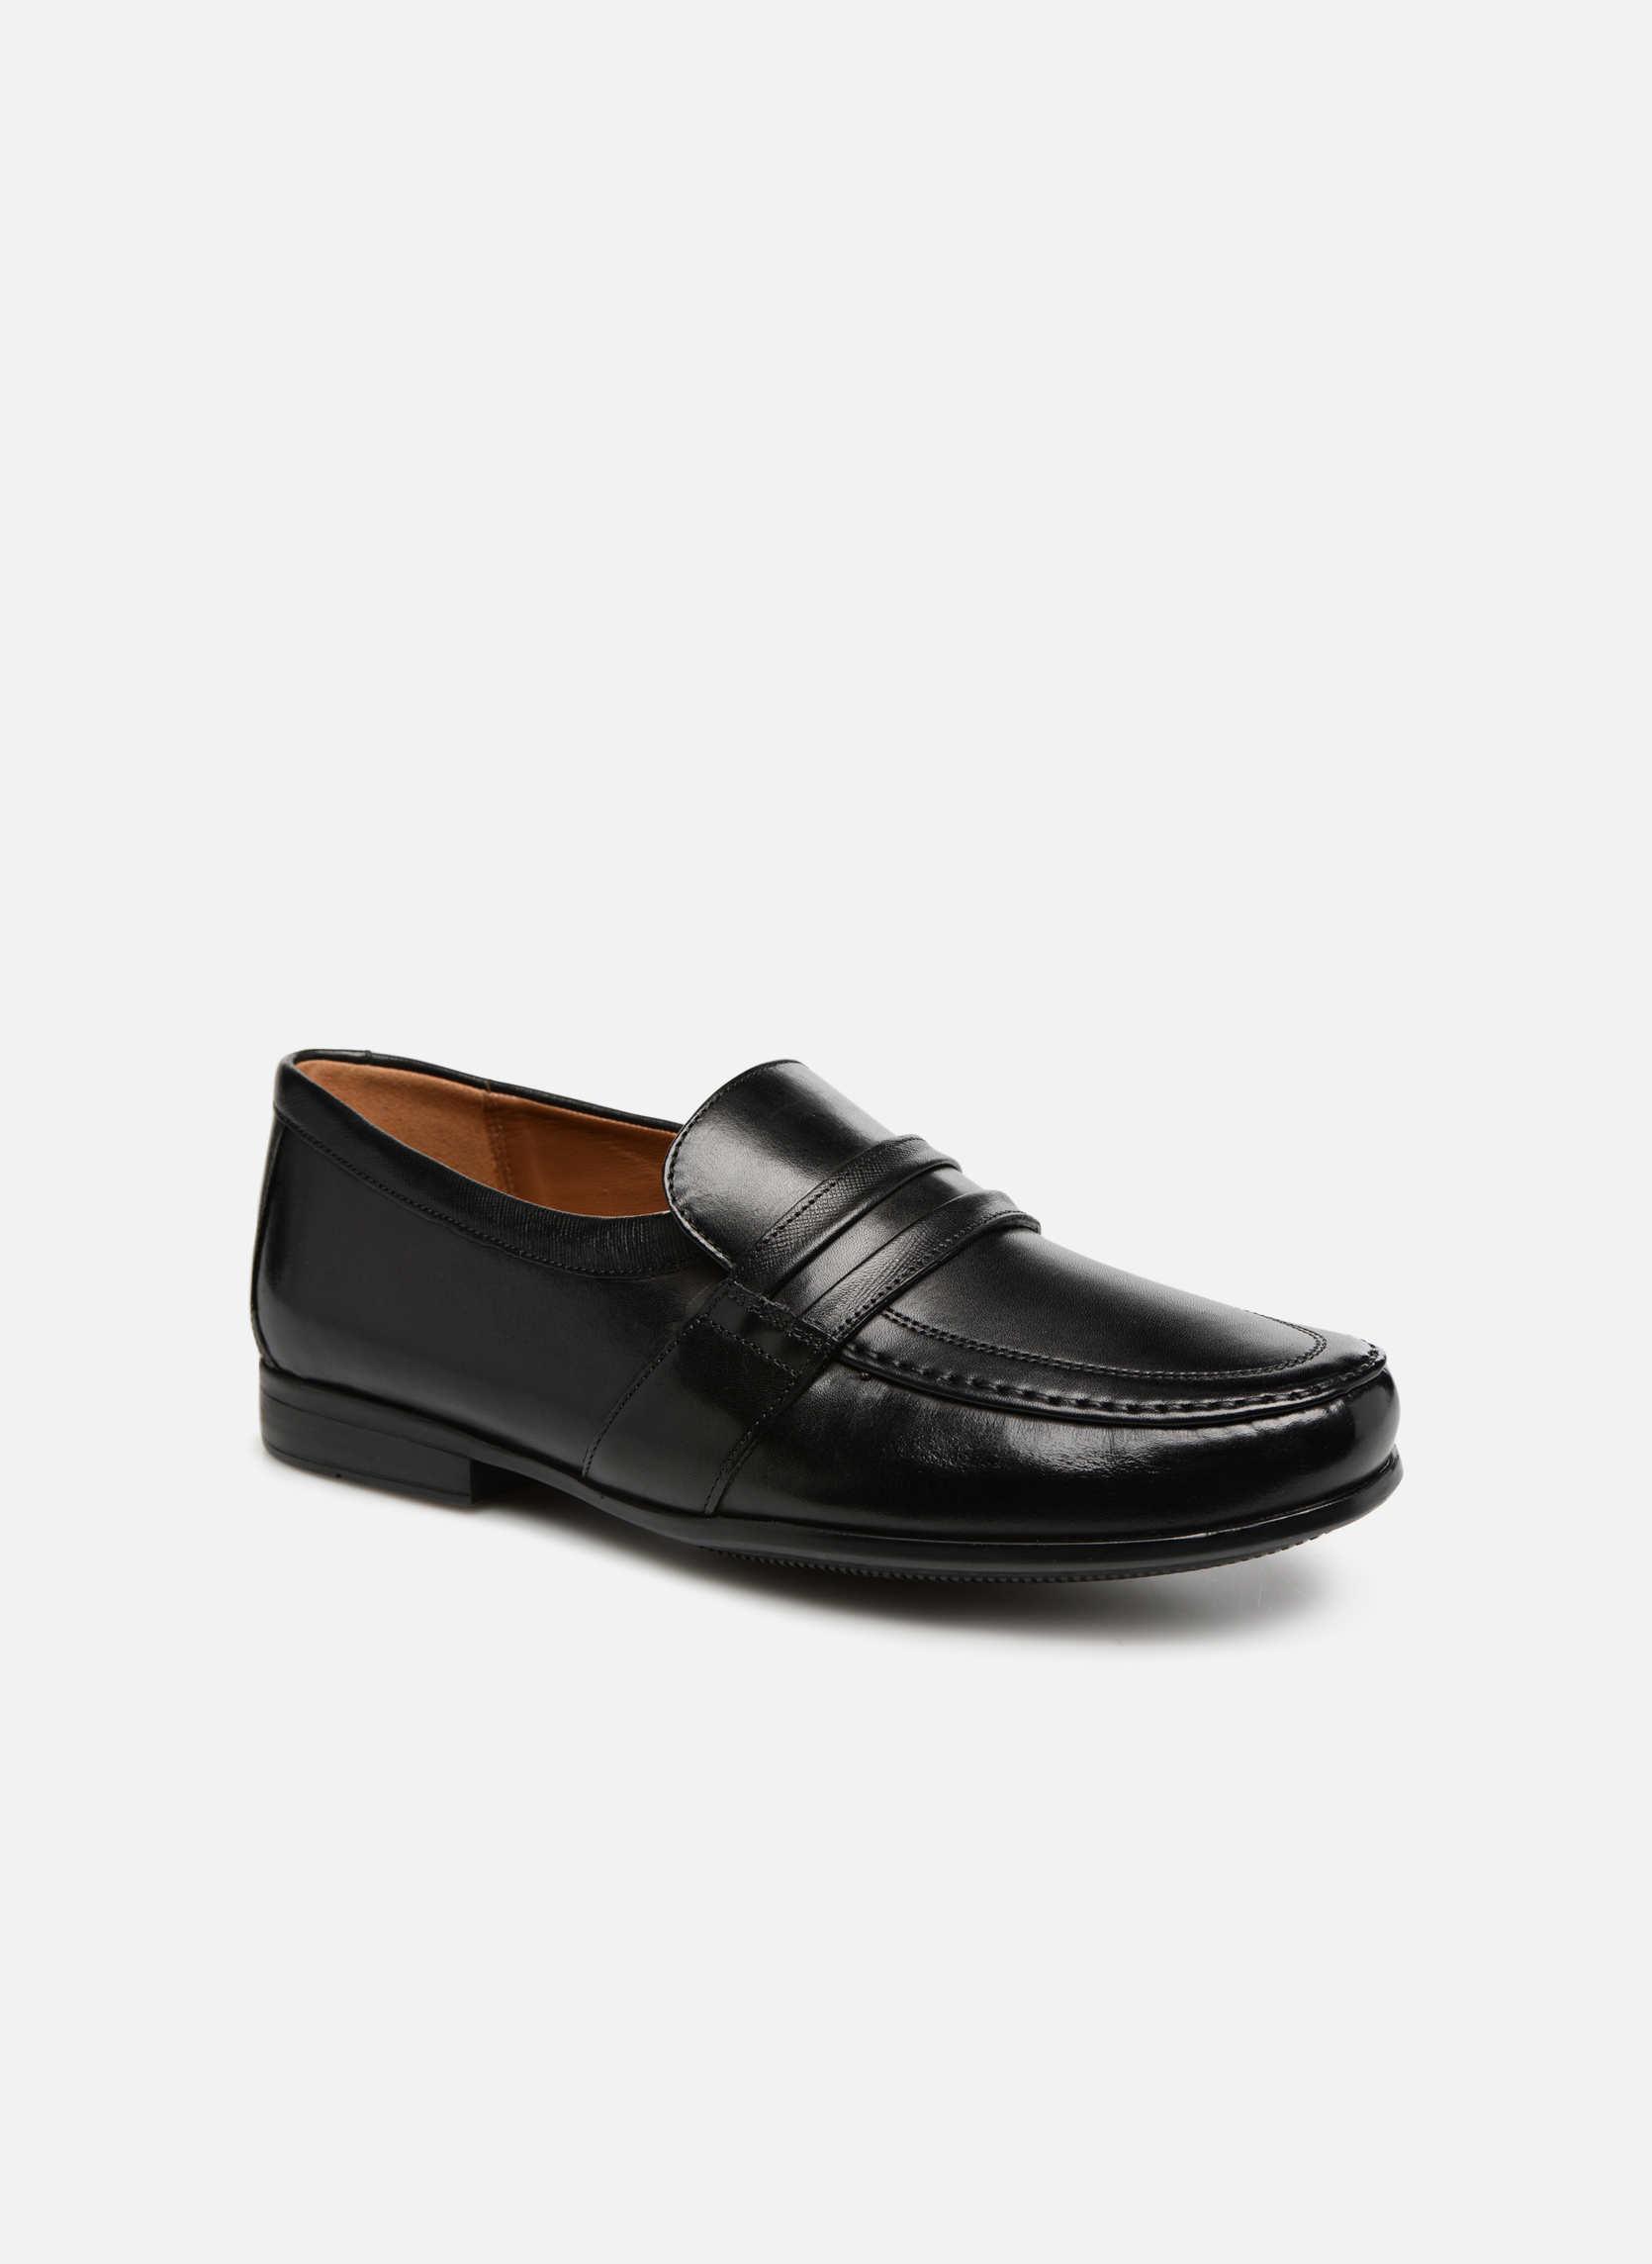 Claude Aston by Clarks